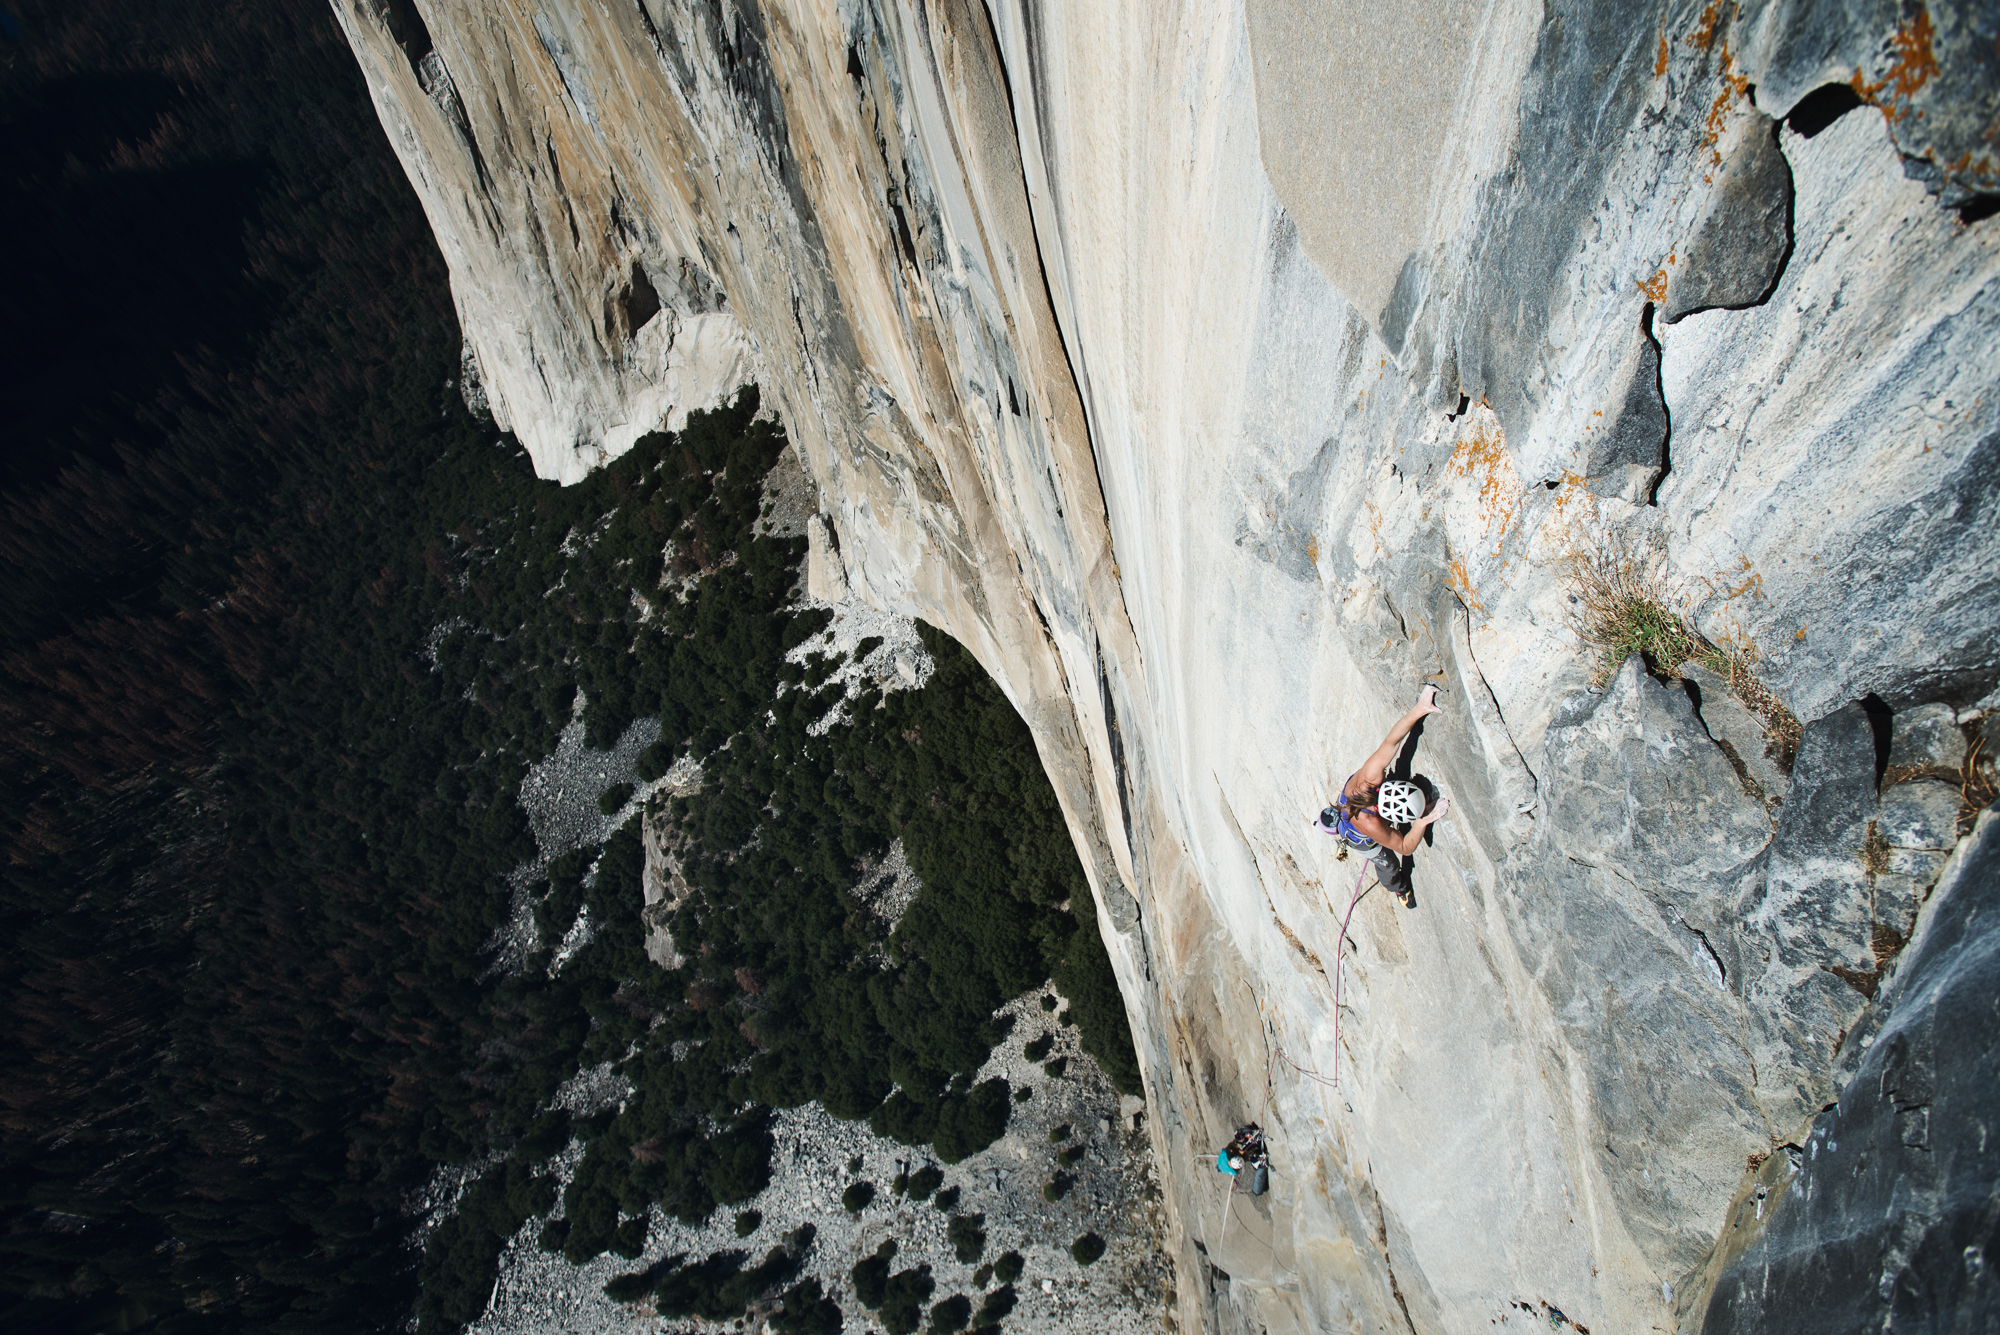 Barbara Zangerl leads The Devil's Brow pitch (5.13a) near the top of Zodiac (VI 5.13d), El Capitan. [Photo] Francois Lebeau and Black Diamond Equipment